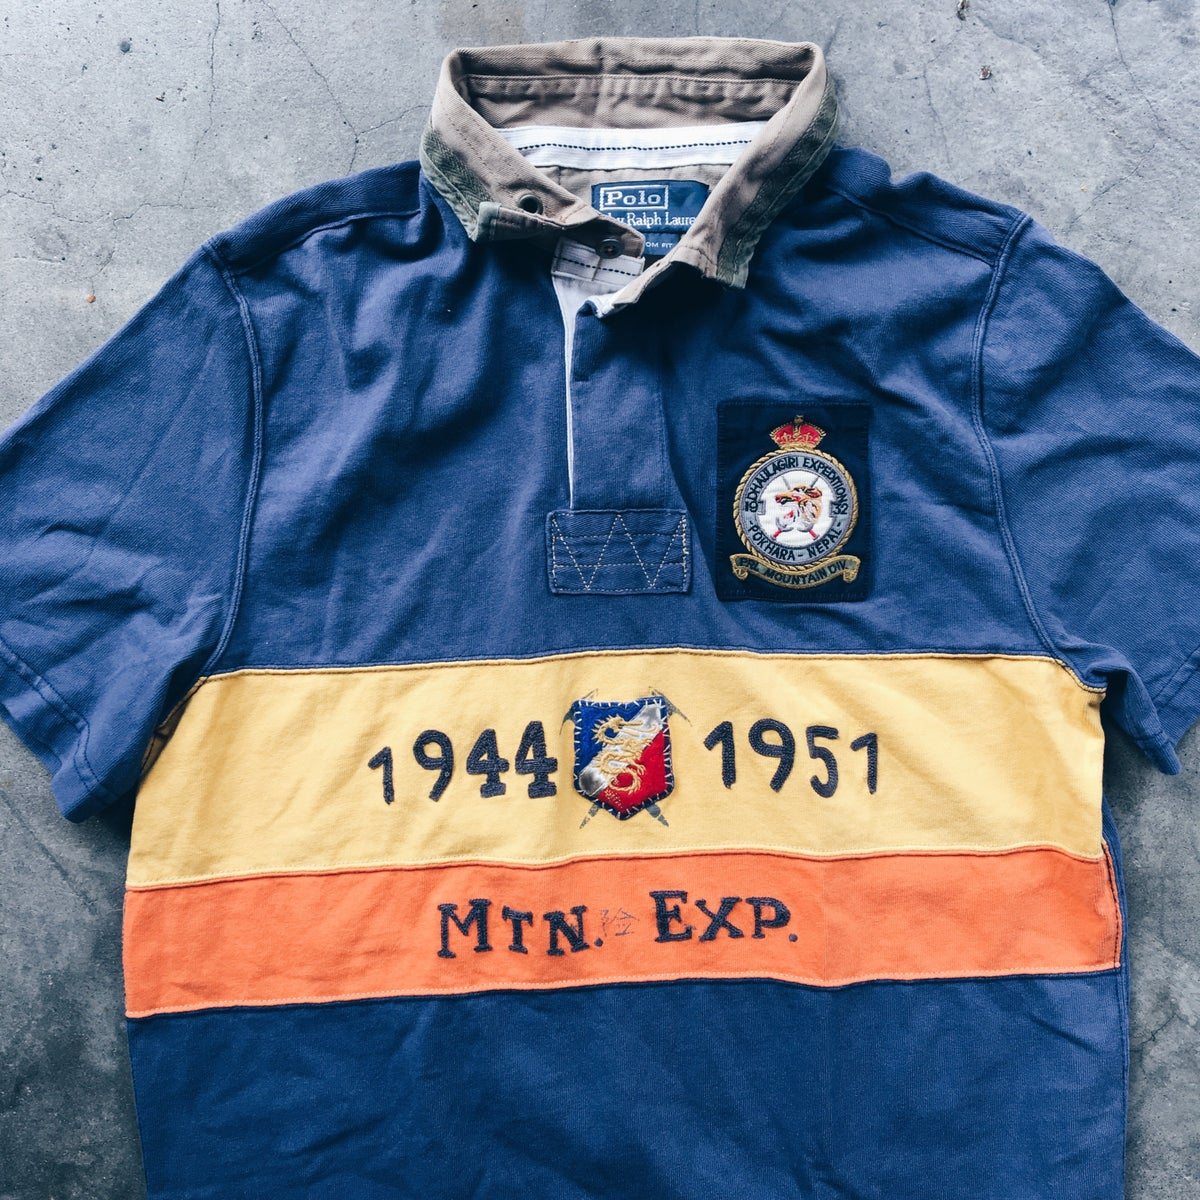 Image of Original Vintage Polo Expedition Rugby Top.